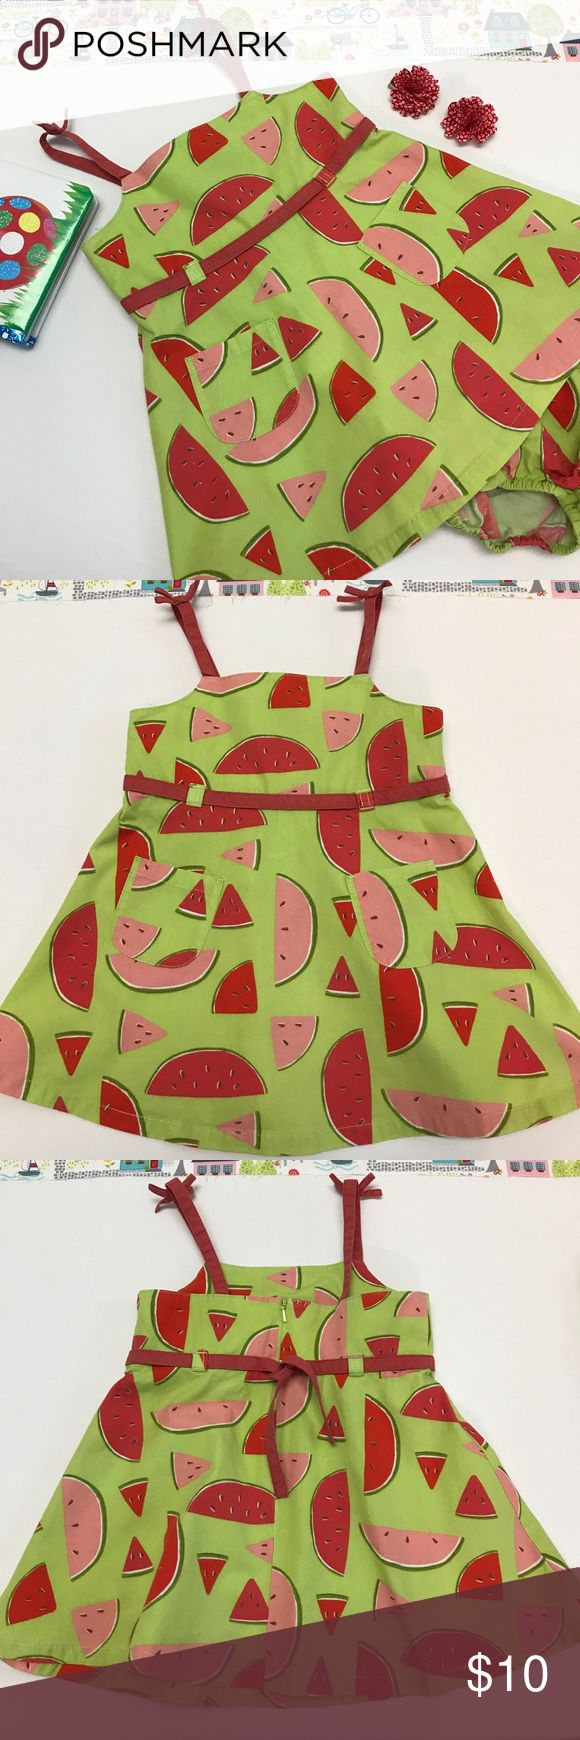 Watermelon Summer Dress & Diaper Cover, Size 18-24 Cute little summer dress in lime green with watermelon slices and a matching diaper cover. By Gymboree.  The dress is in good condition however the red ribbon around the waist and the spaghetti strap sleeves has faded due to washings.  The price has been adjusted to reflect.  The dress has been washed in Dreft and comes from a smoke-free home. Gymboree Dresses Casual